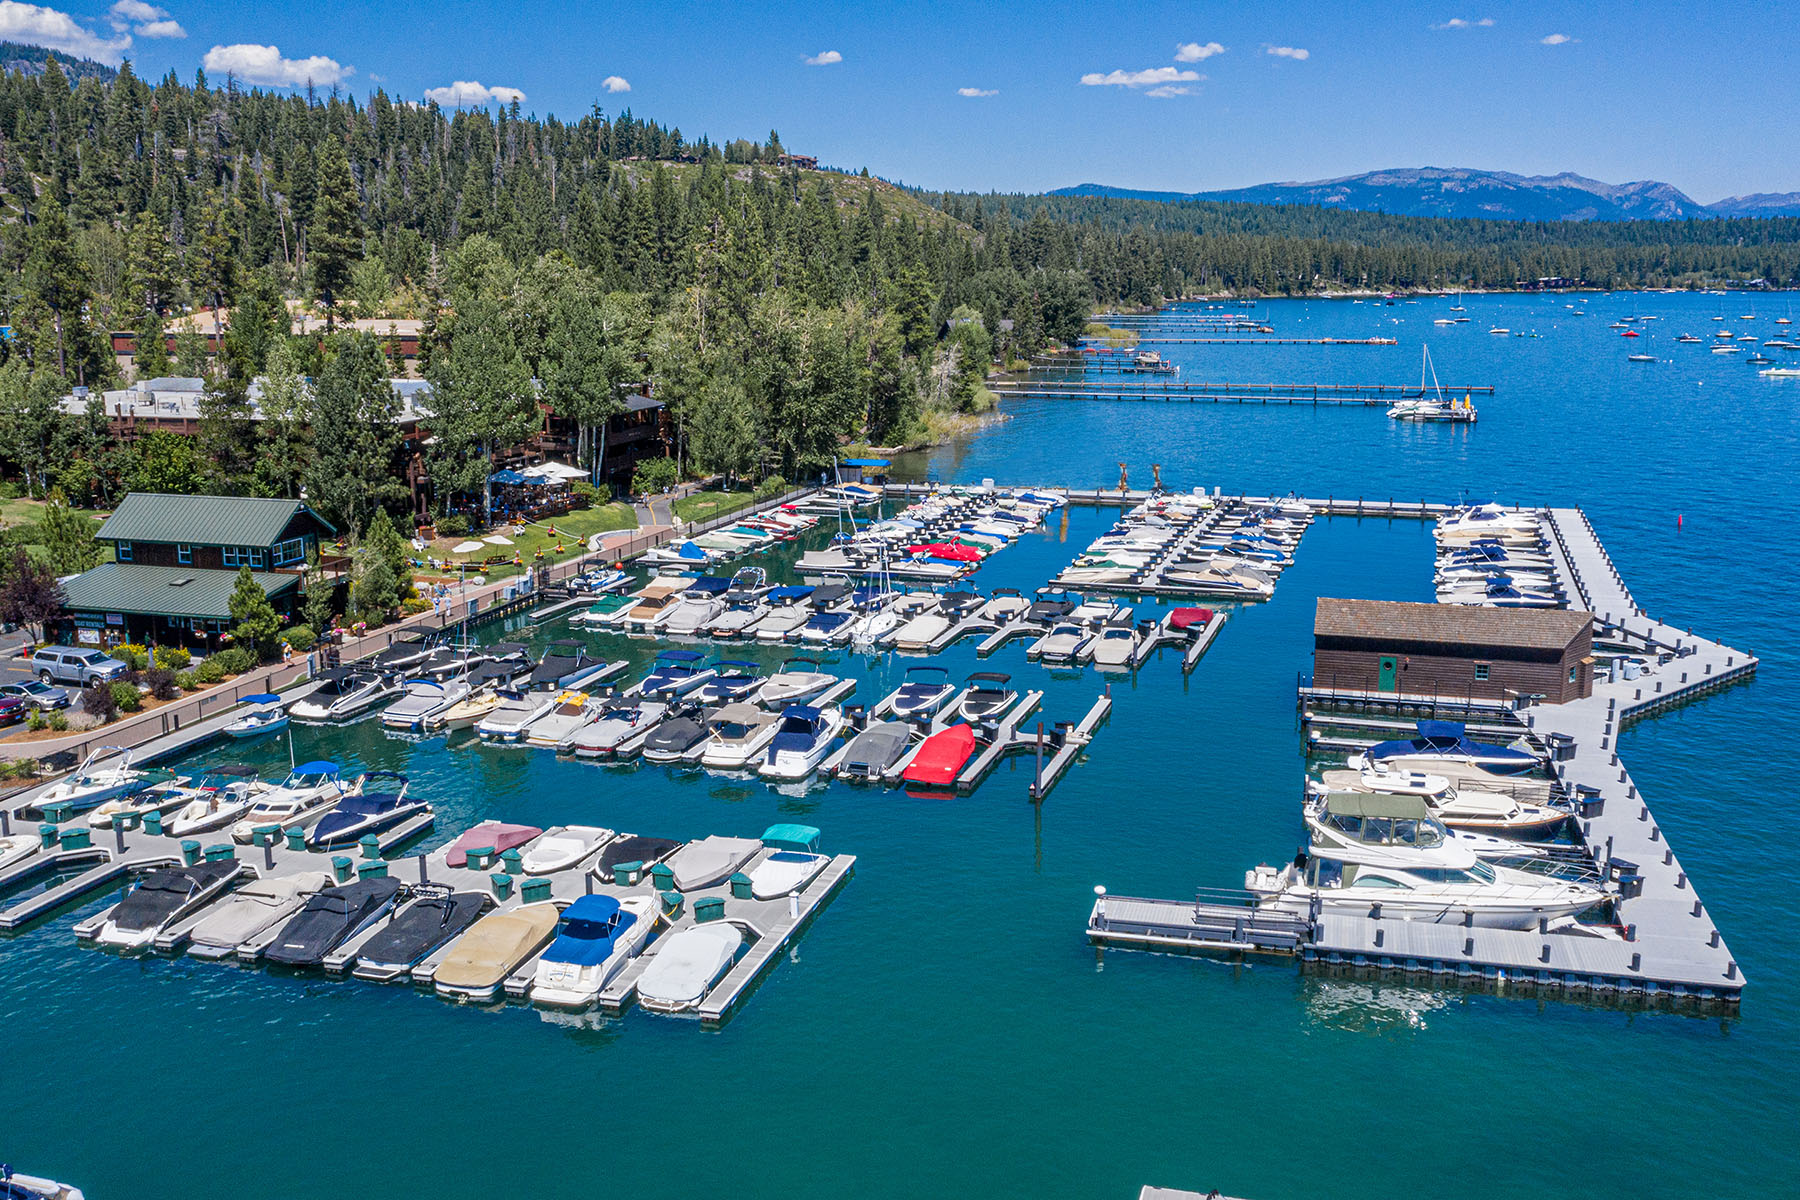 en 700 N. Lake Blvd. #F-25, Tahoe City, Californie ,96145  , États-Unis